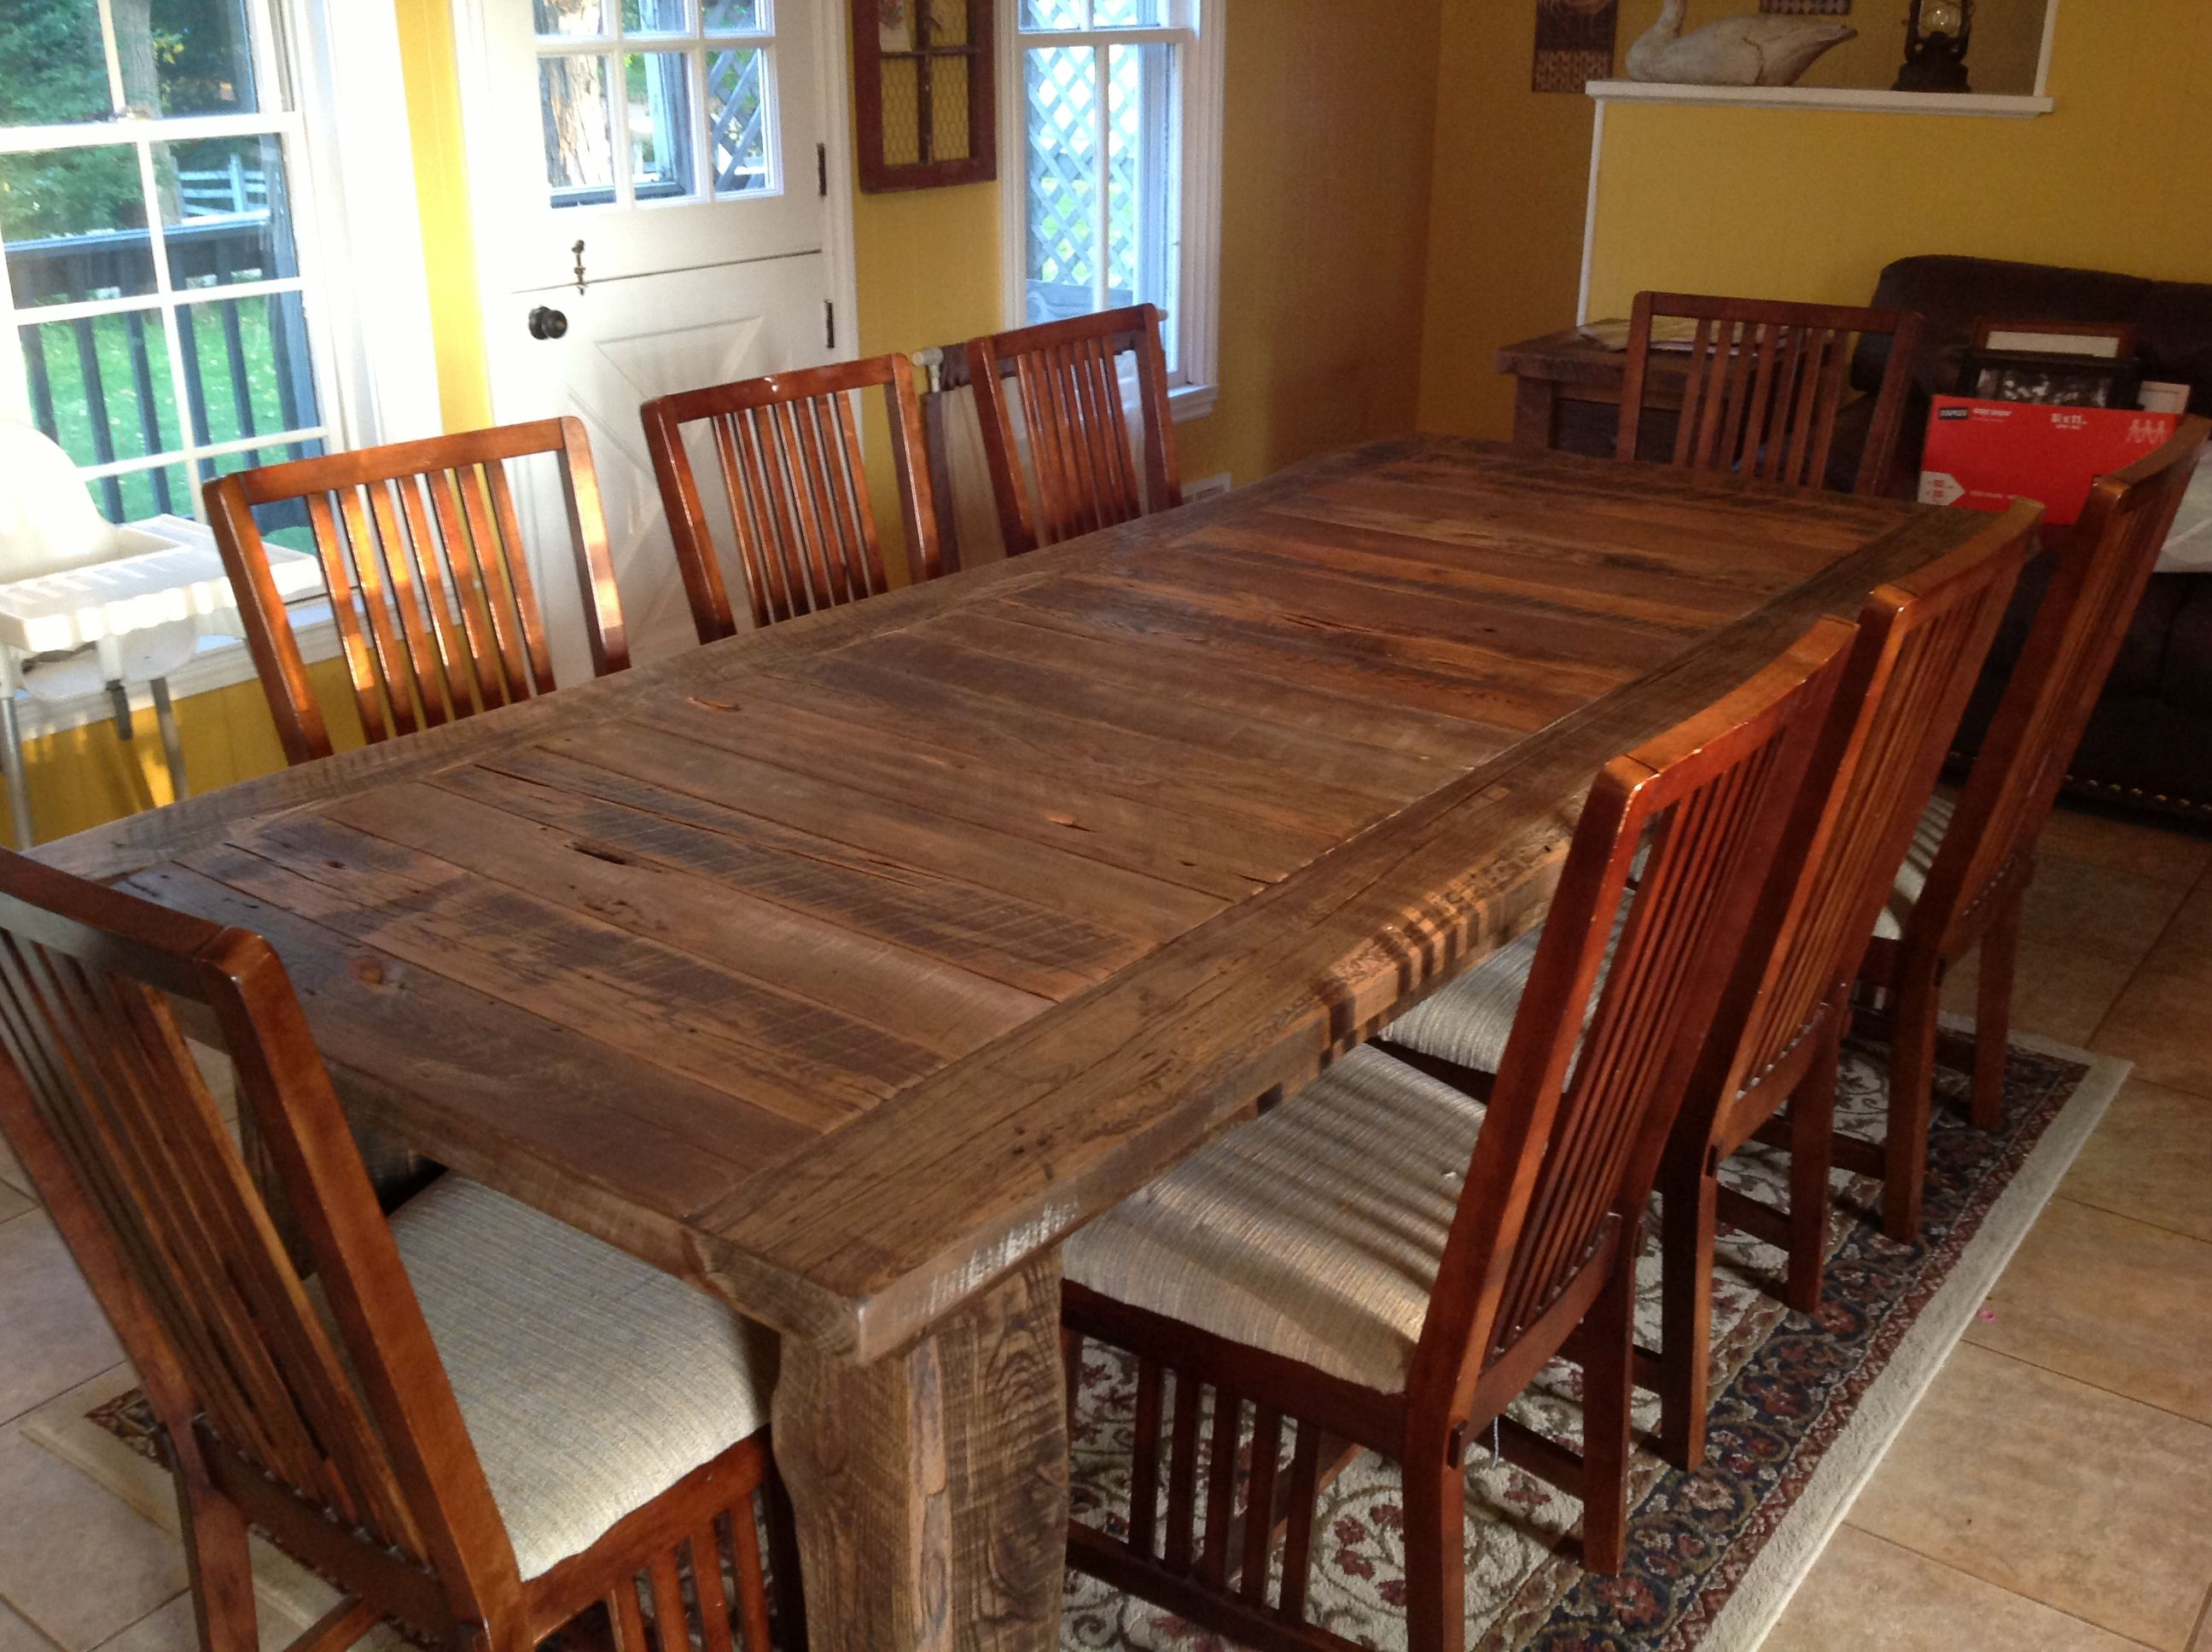 reclaimed-wood-table-michigan-unique-farmhouse-table | barn wood ...